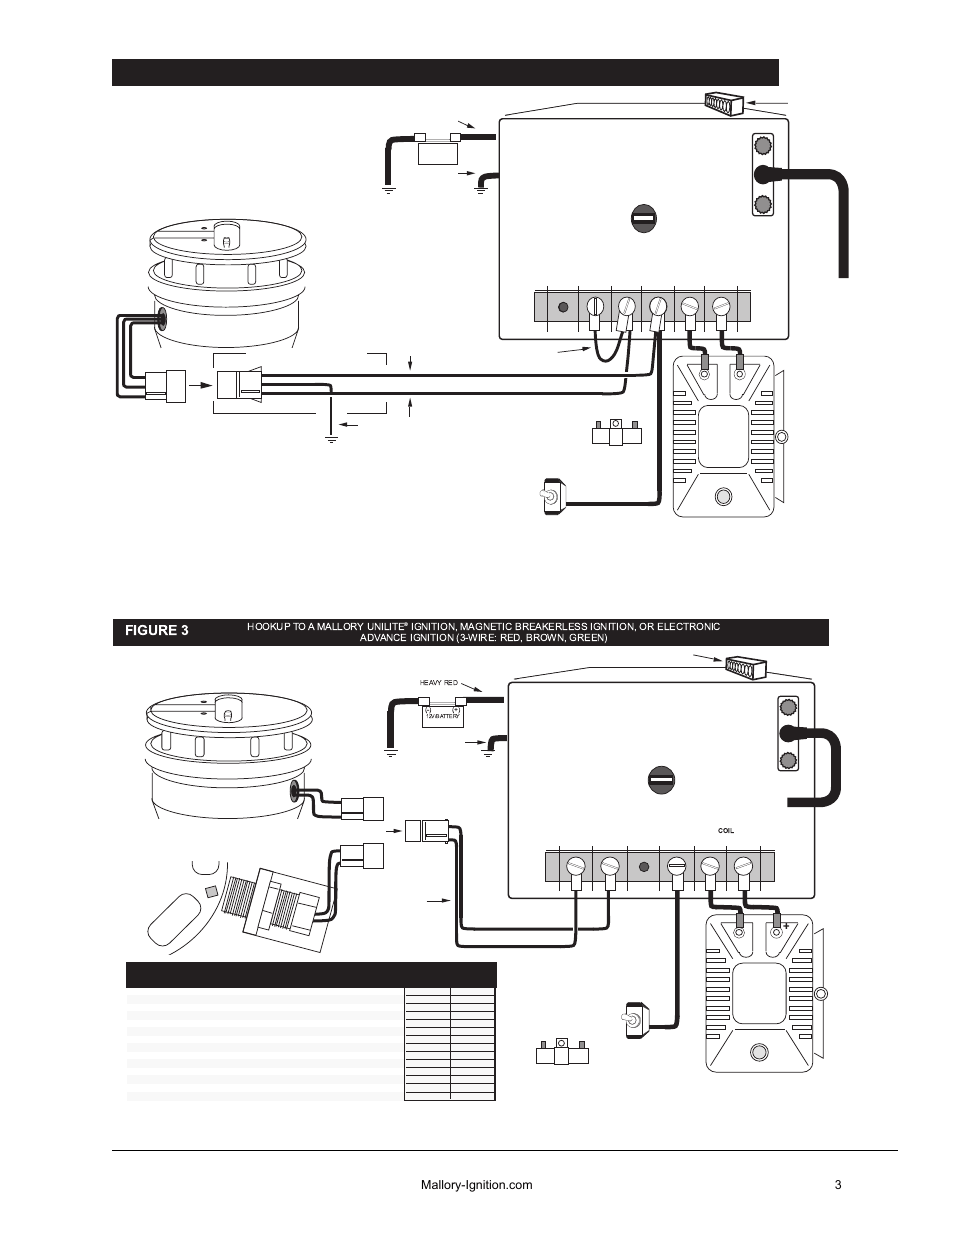 Fantastic msd 8972 wiring diagram ideas electrical and wiring mallory ignition troubleshooting gallery free troubleshooting sciox Gallery